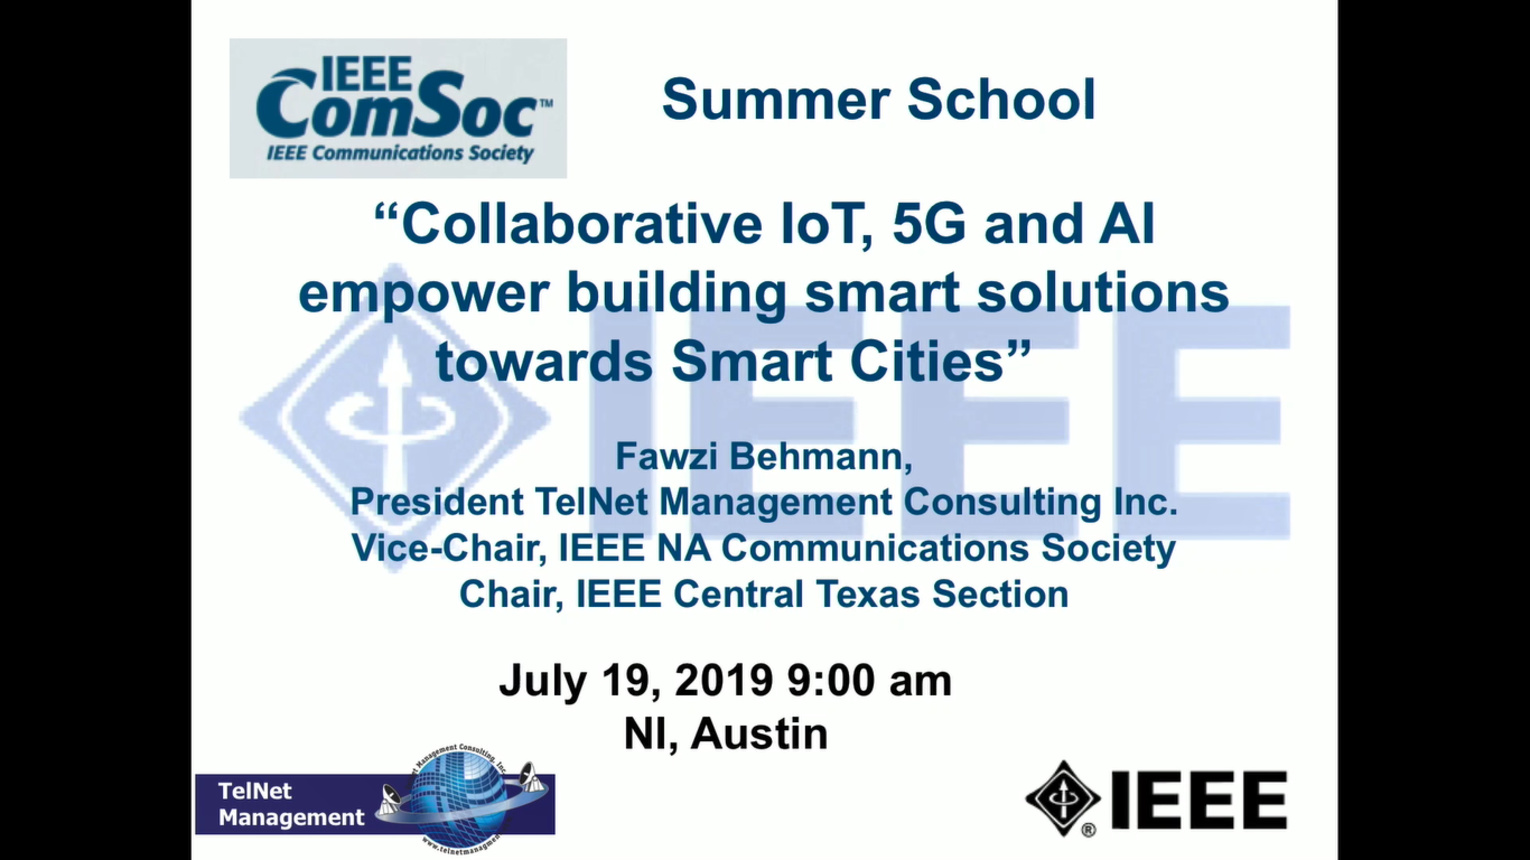 Collaborative IoT, 5G and AI empower building smart solutions towards Smart Cities